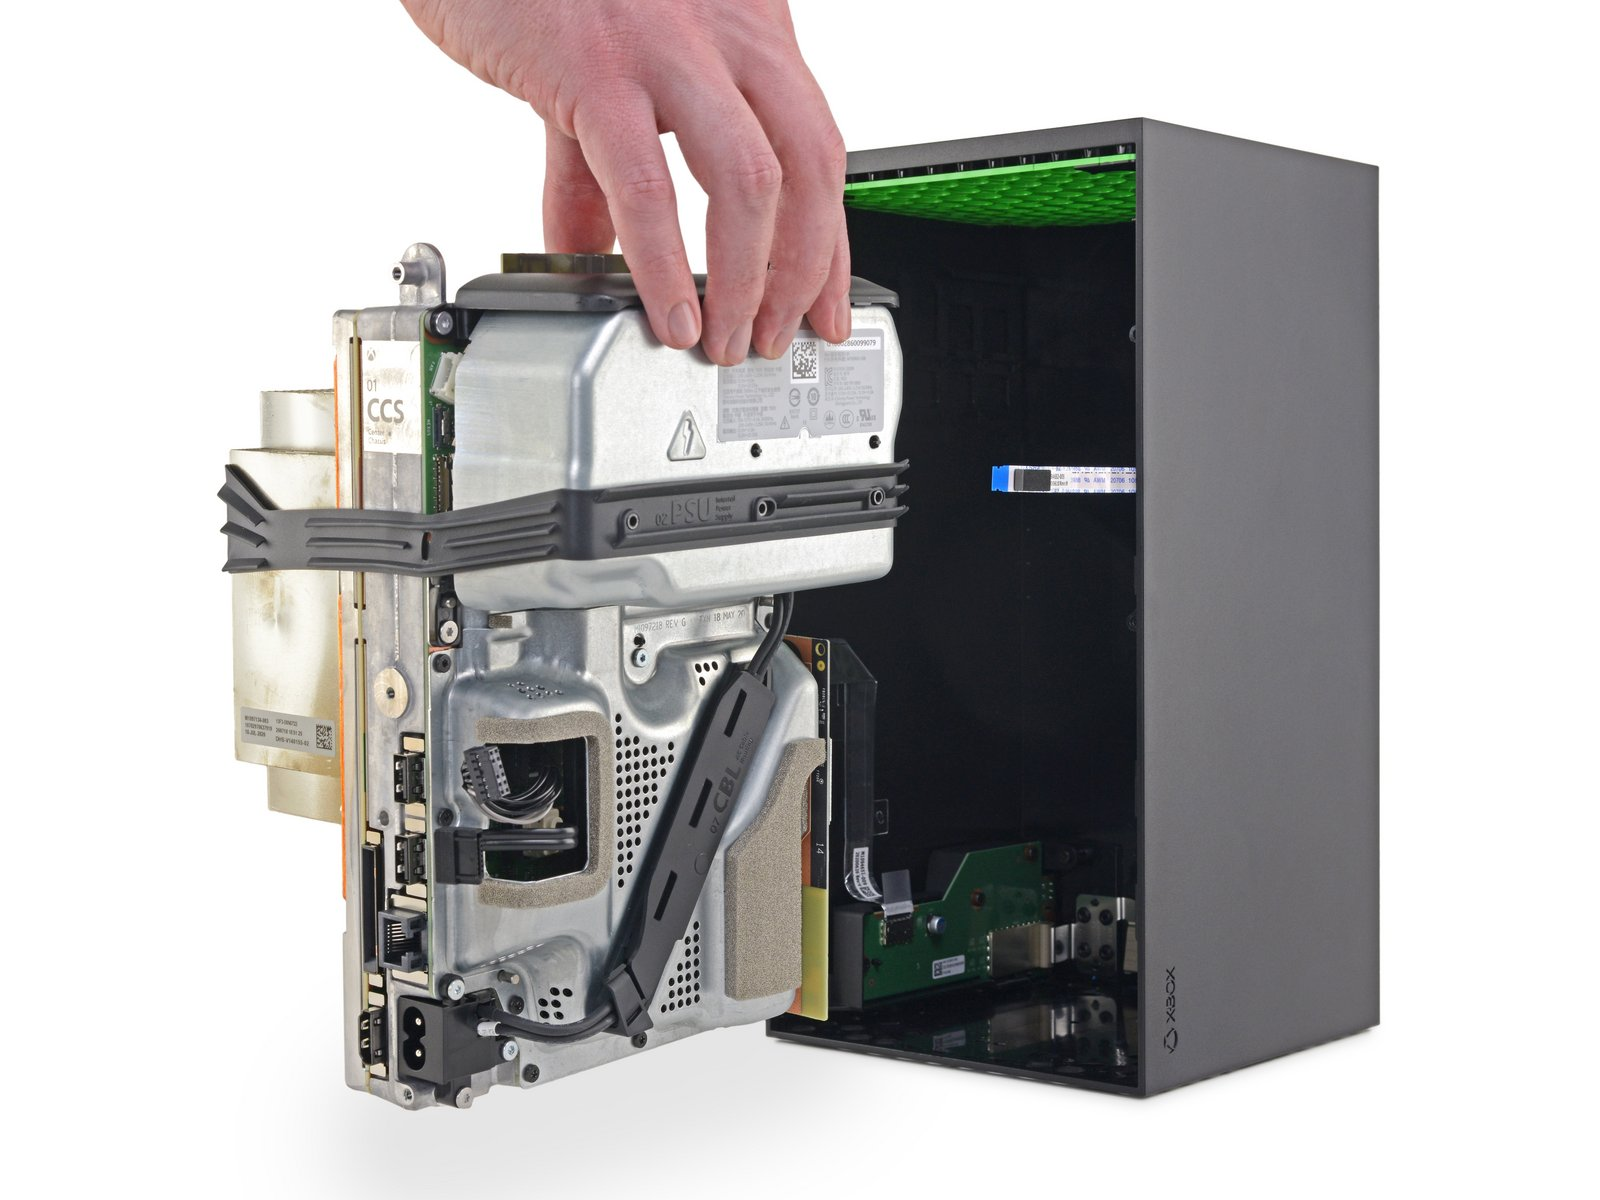 Removing the insides of an Xbox Series X.